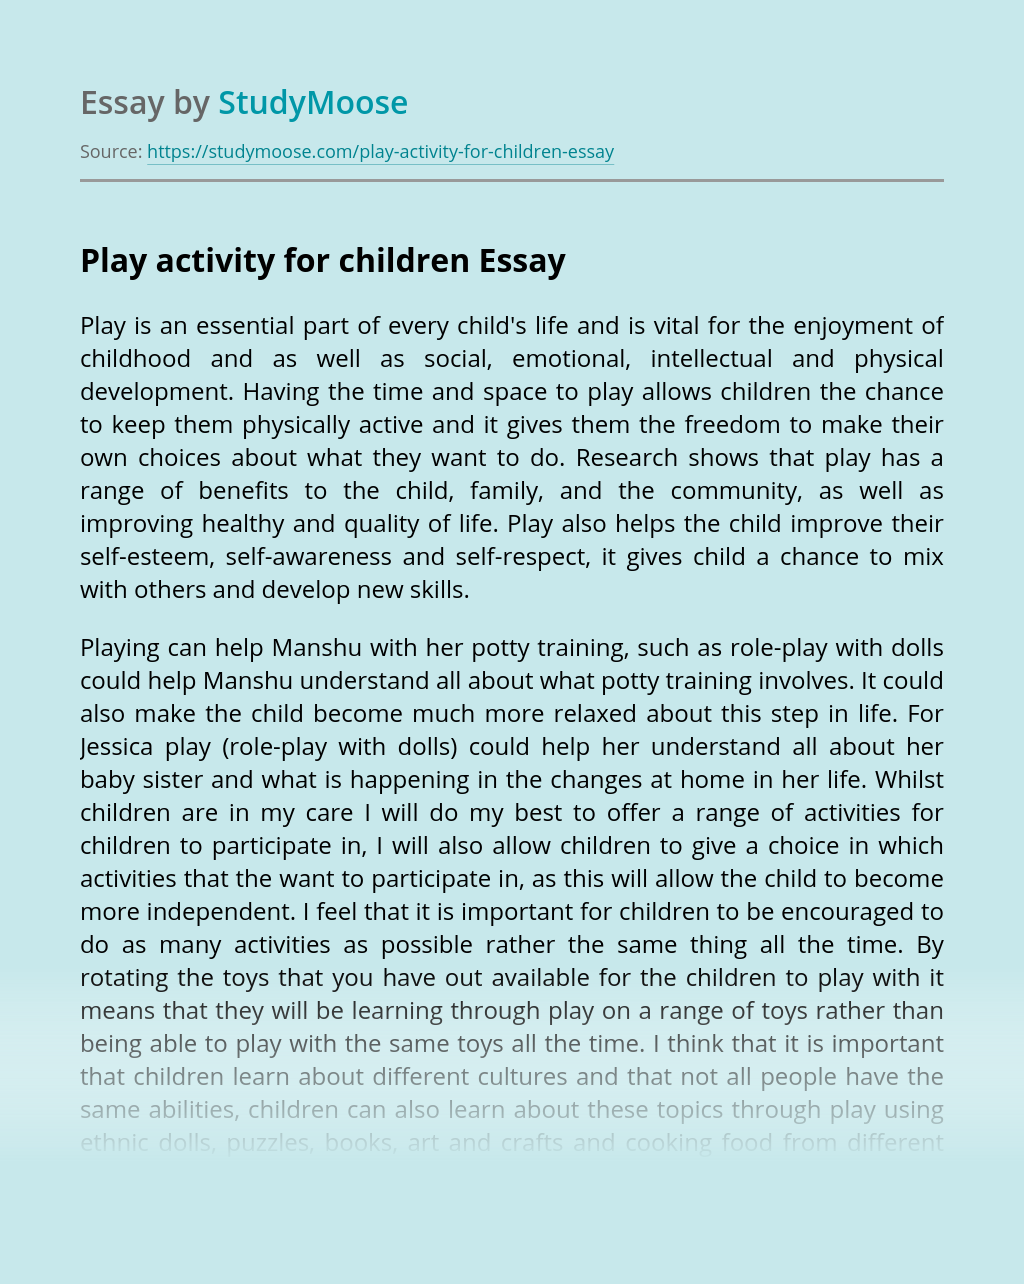 Play activity for children